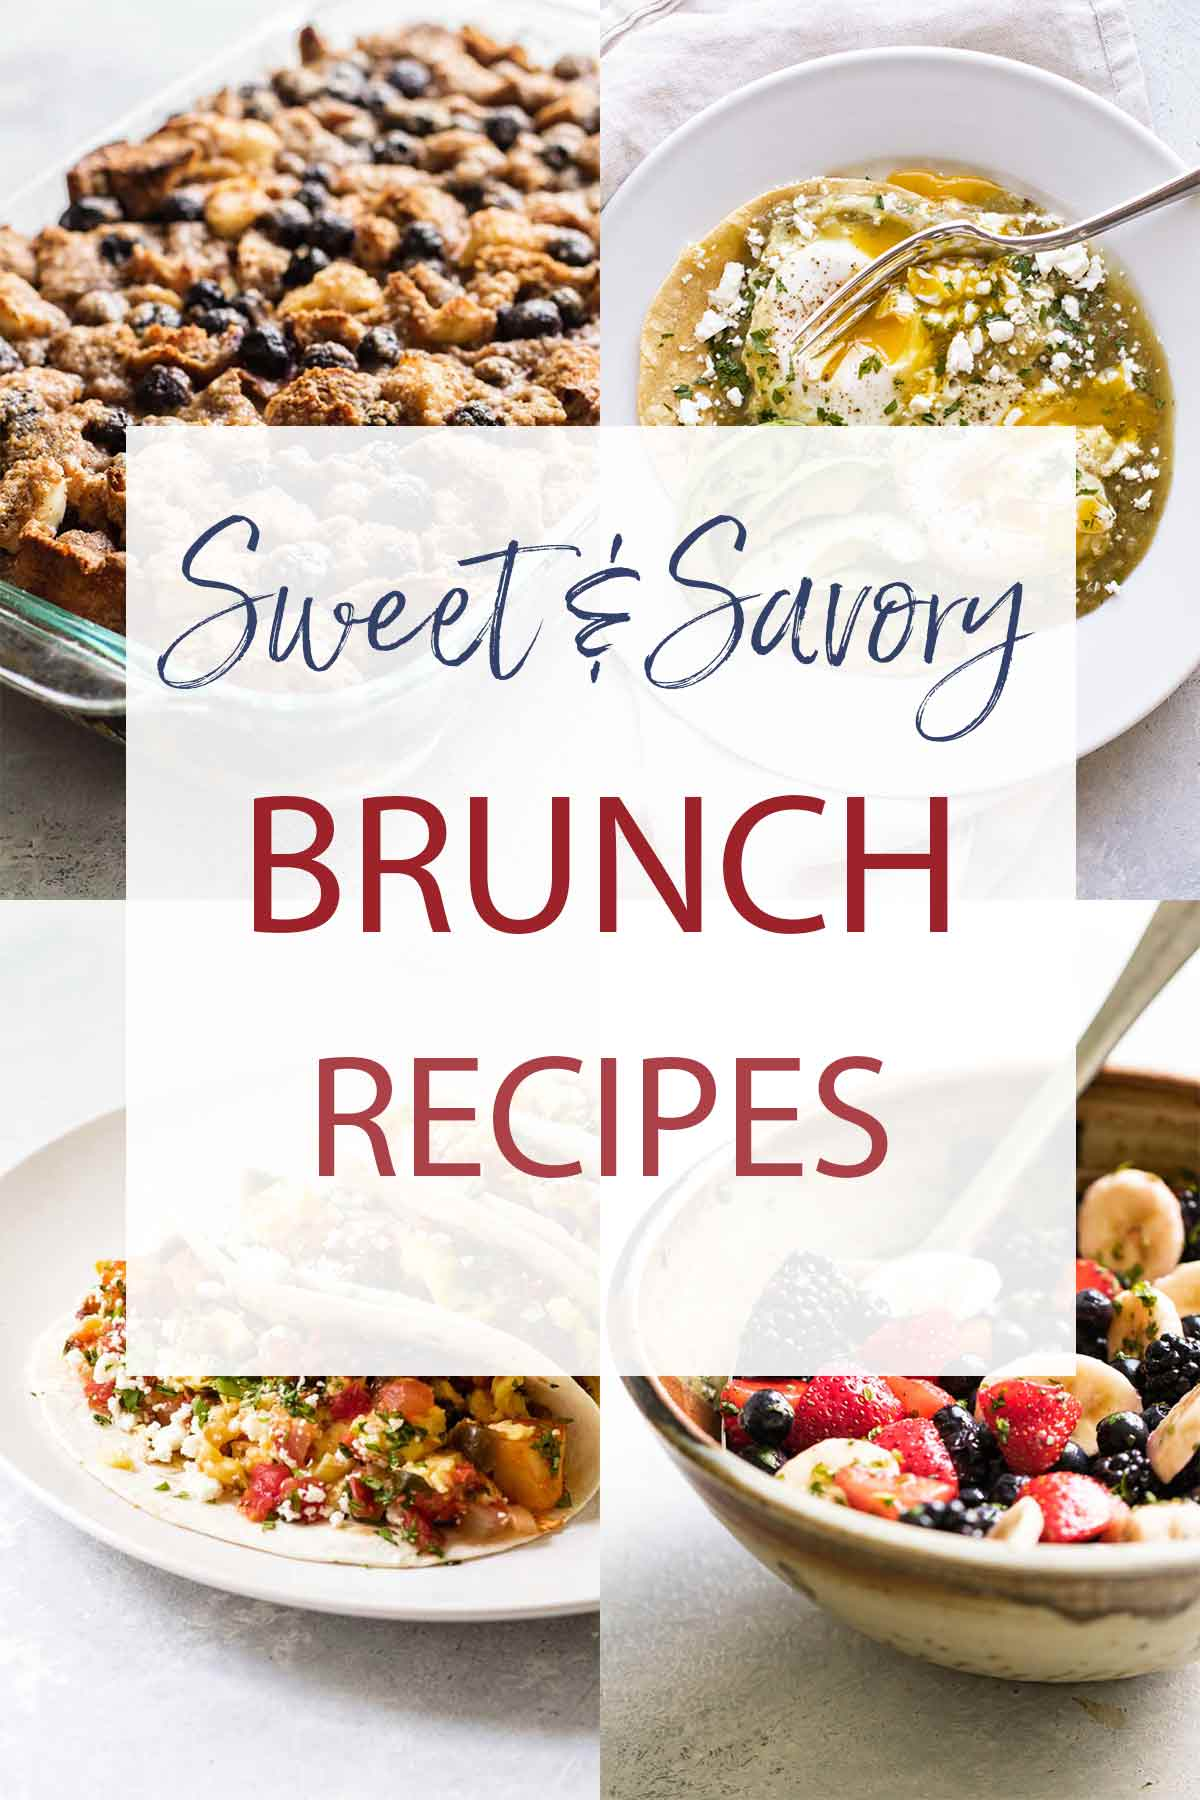 photo collage of brunch recipes